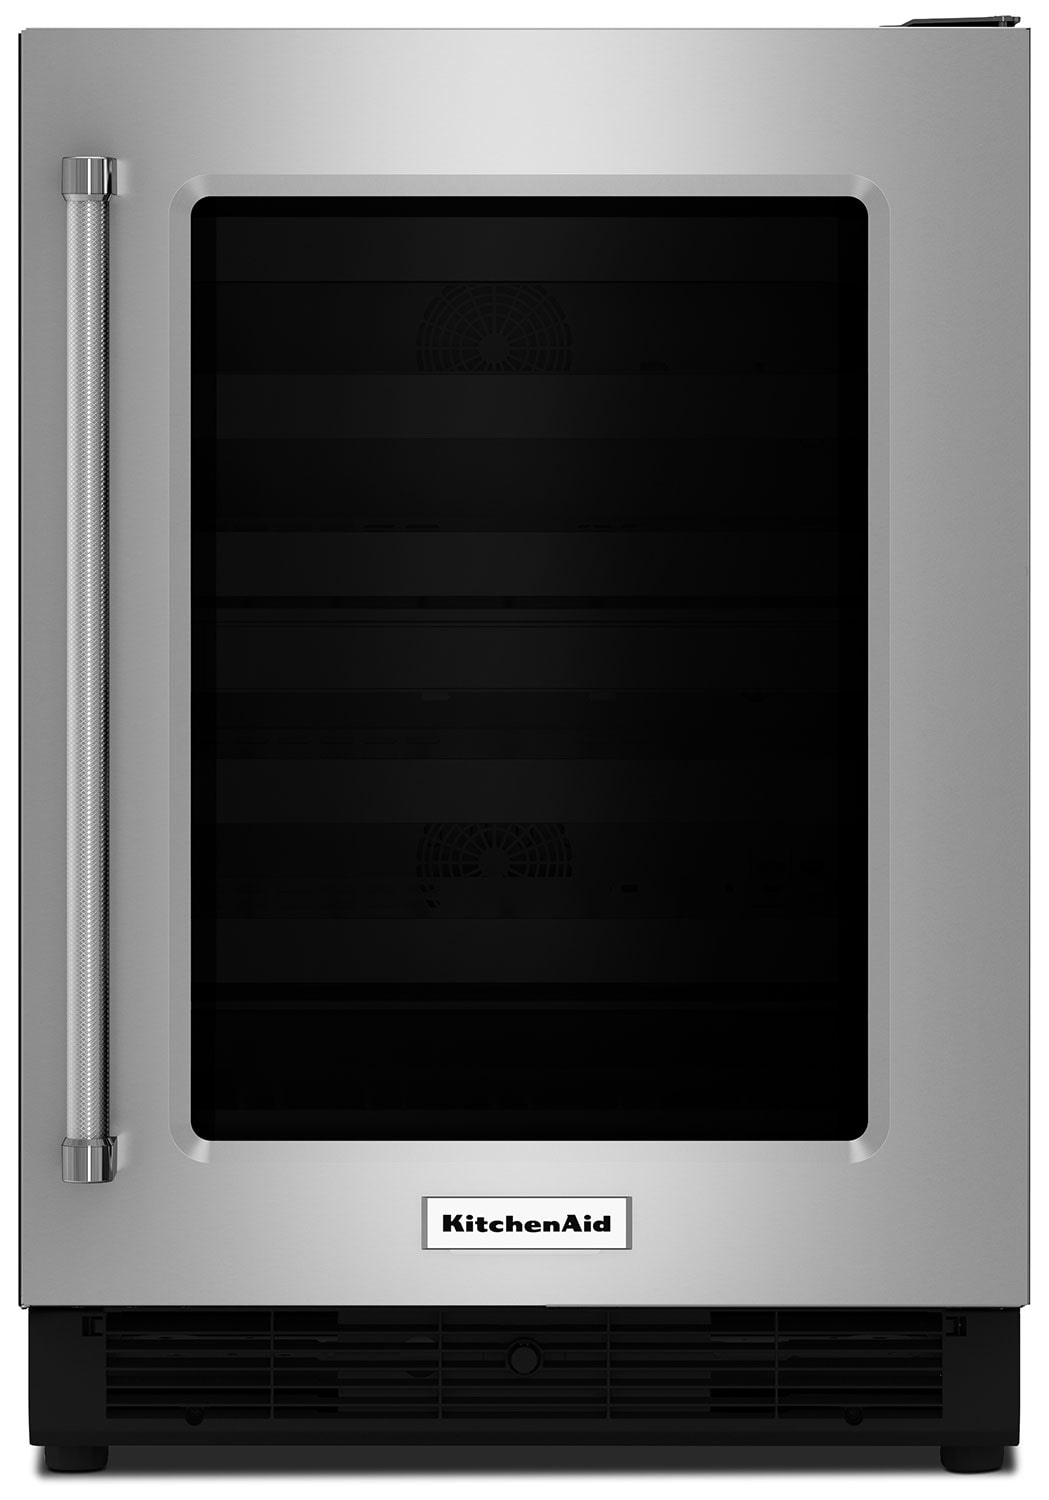 Refrigerators and Freezers - KitchenAid Stainless Steel Undercounter Refrigerator w/ Right Door Swing (5.1 Cu Ft.) - KURR204ESB